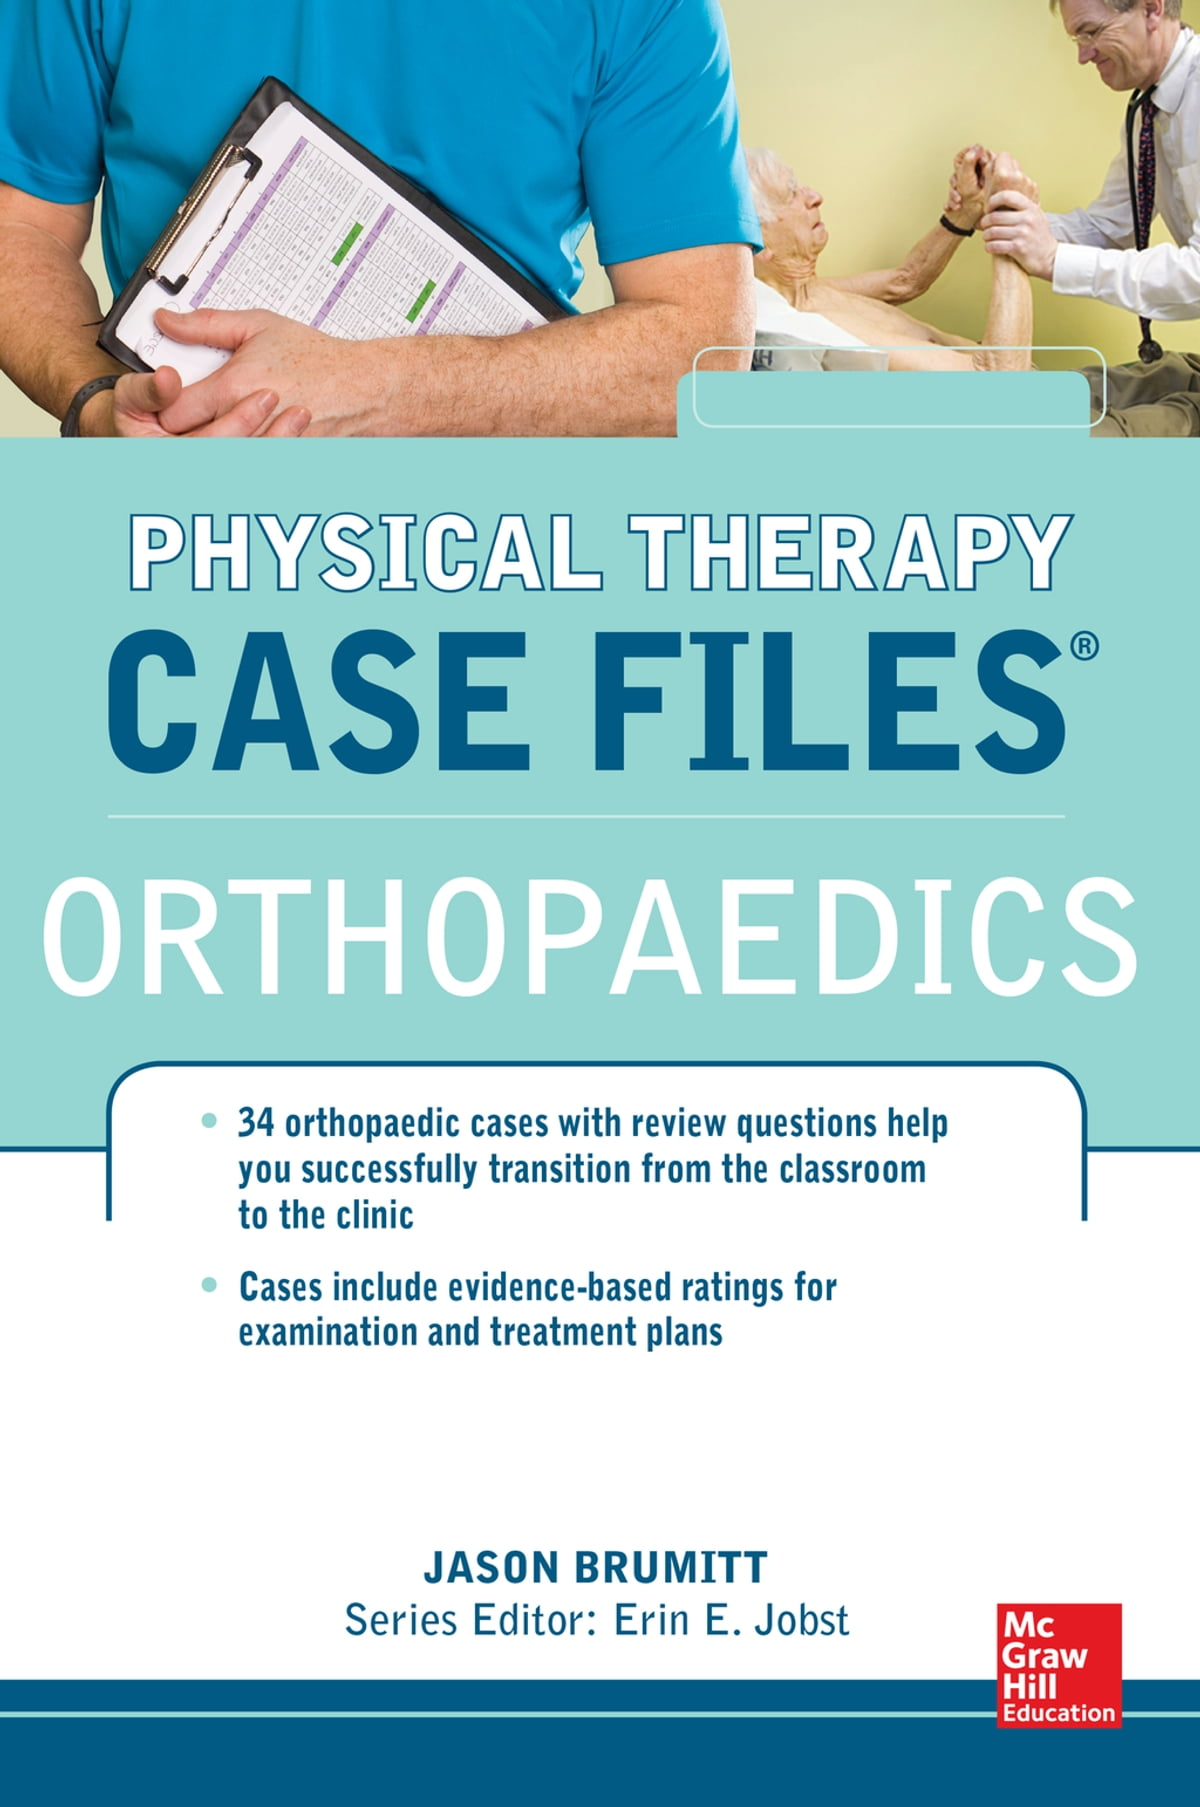 Physical Therapy Case Files Orthopaedics eBook by Jason Brumitt ...